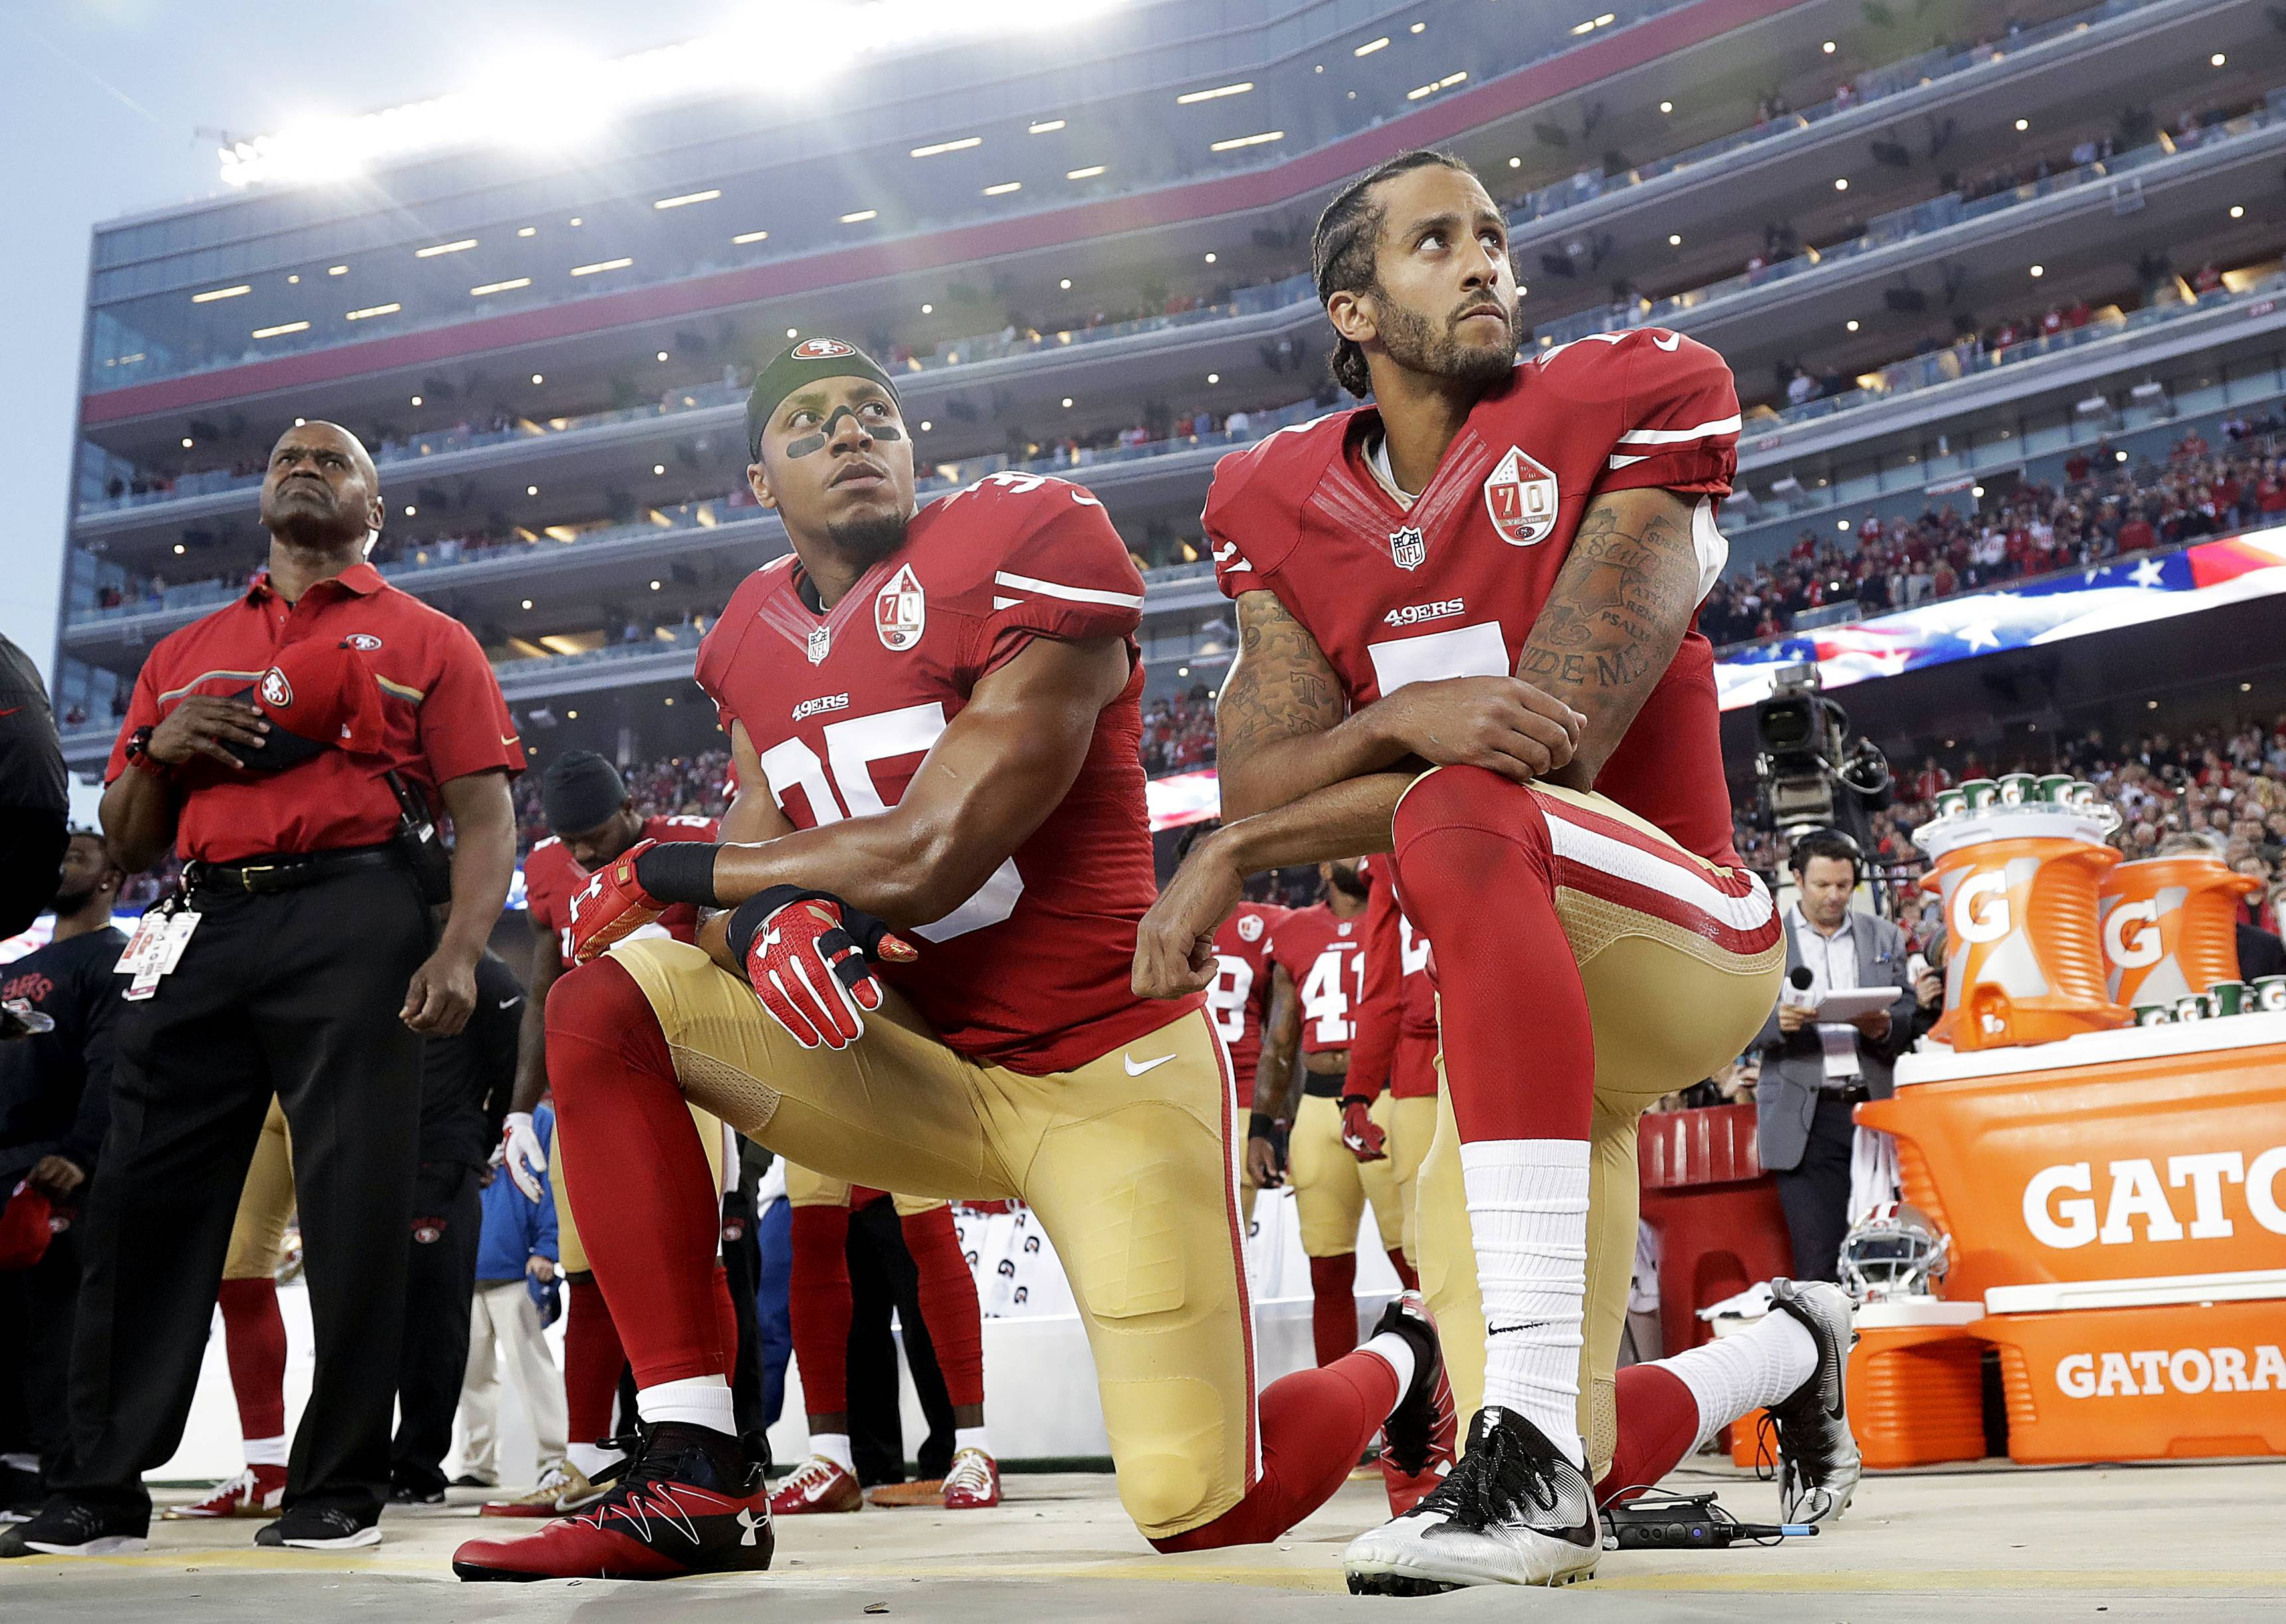 San Francisco 49ers safety Eric Reid (35) and quarterback Colin Kaepernick kneel during the national anthem. NFL owners hope a new anthem policy keeps fans from focusing on politics and puts their attention on the football being played.